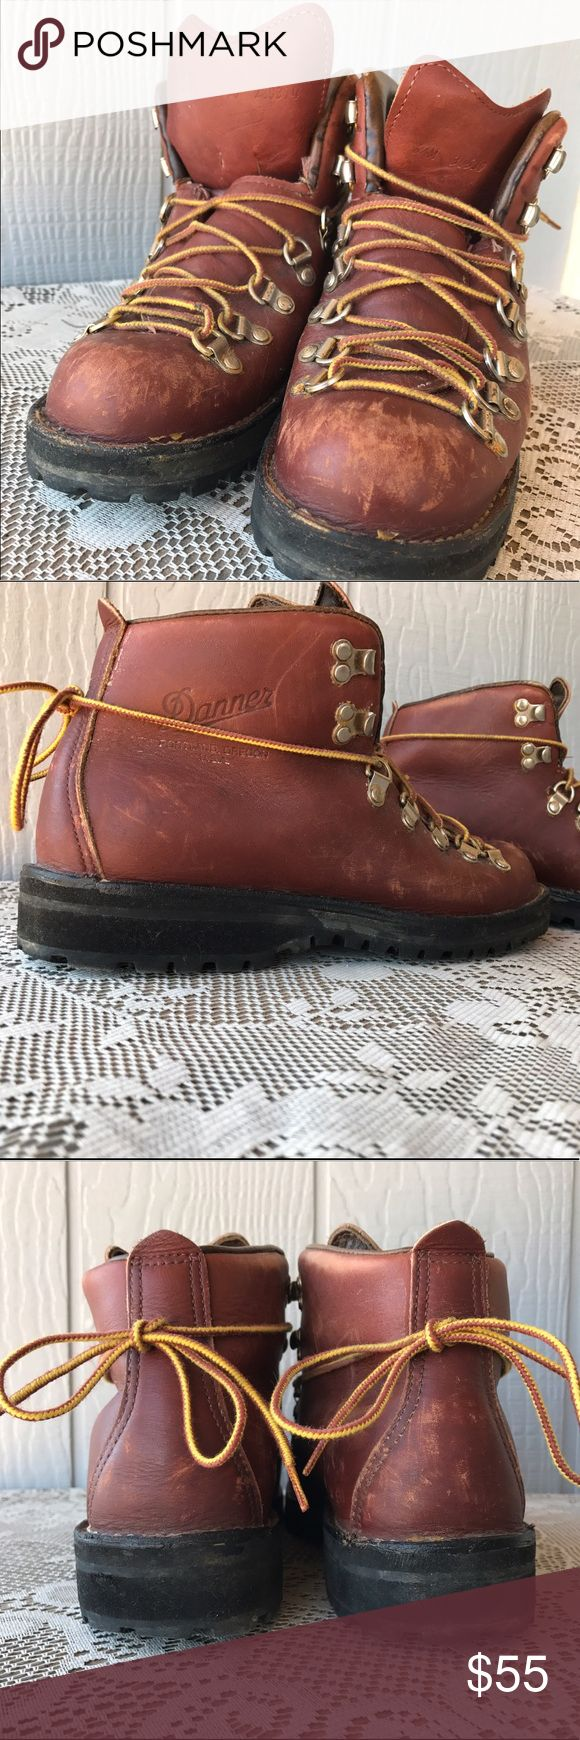 Vintage Leather Danner Hiking Boots These women's hiking boots show normal wear and scuffing from their travels. Extremely solid and well constructed boots. Vibram Lug soles for extra traction. Really cool boots for adventuring or trendy daily wear! Danner Shoes Winter & Rain Boots